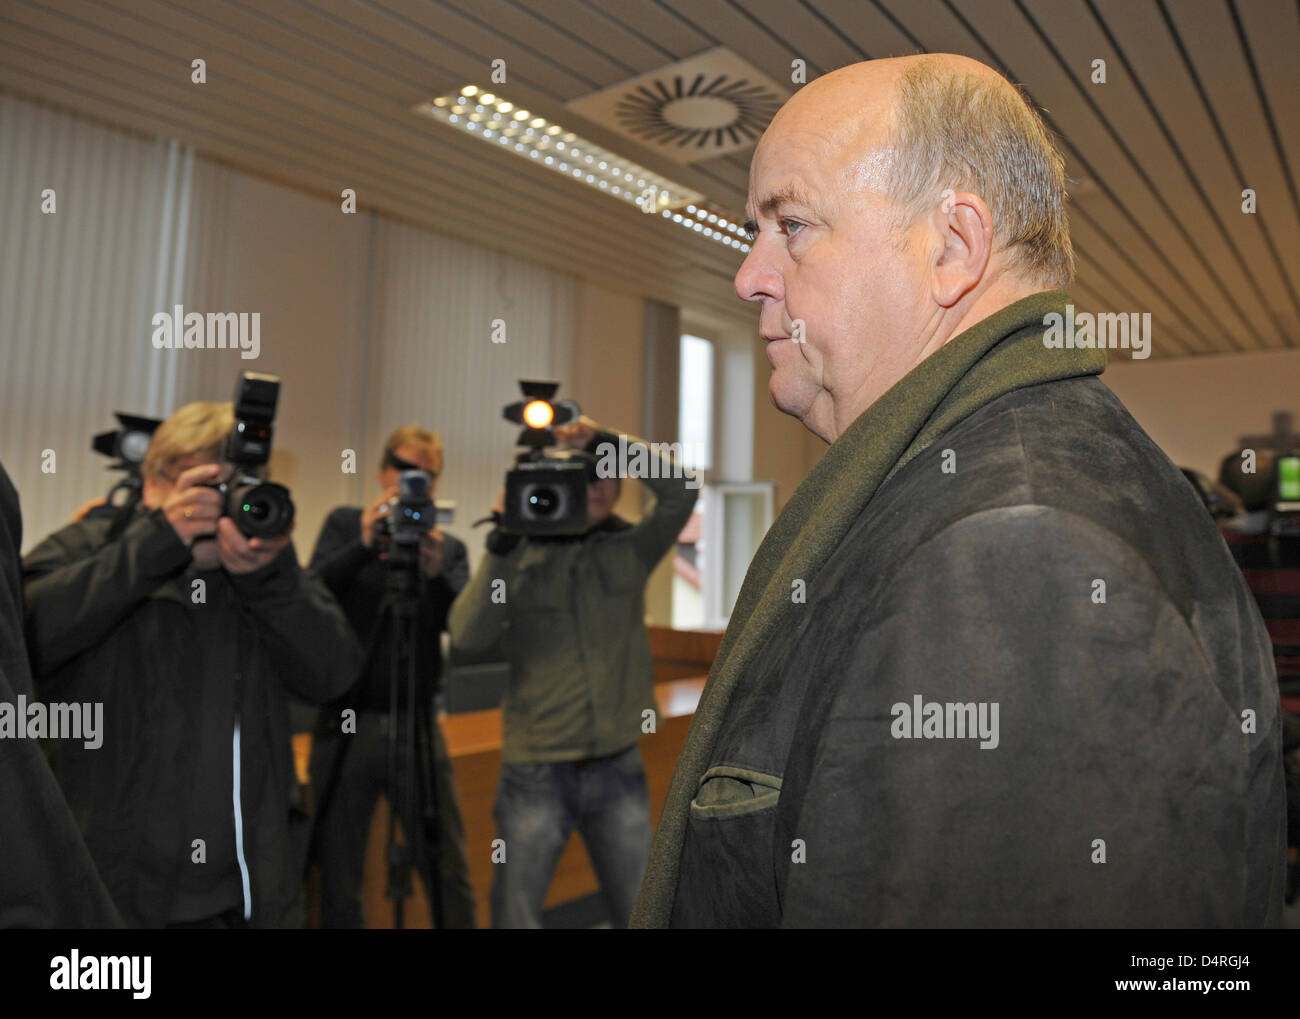 Master butcher Konrad R. arrives at the court room of the County Court in Deggendorf, Germany, 19 October 2009. - Stock Image